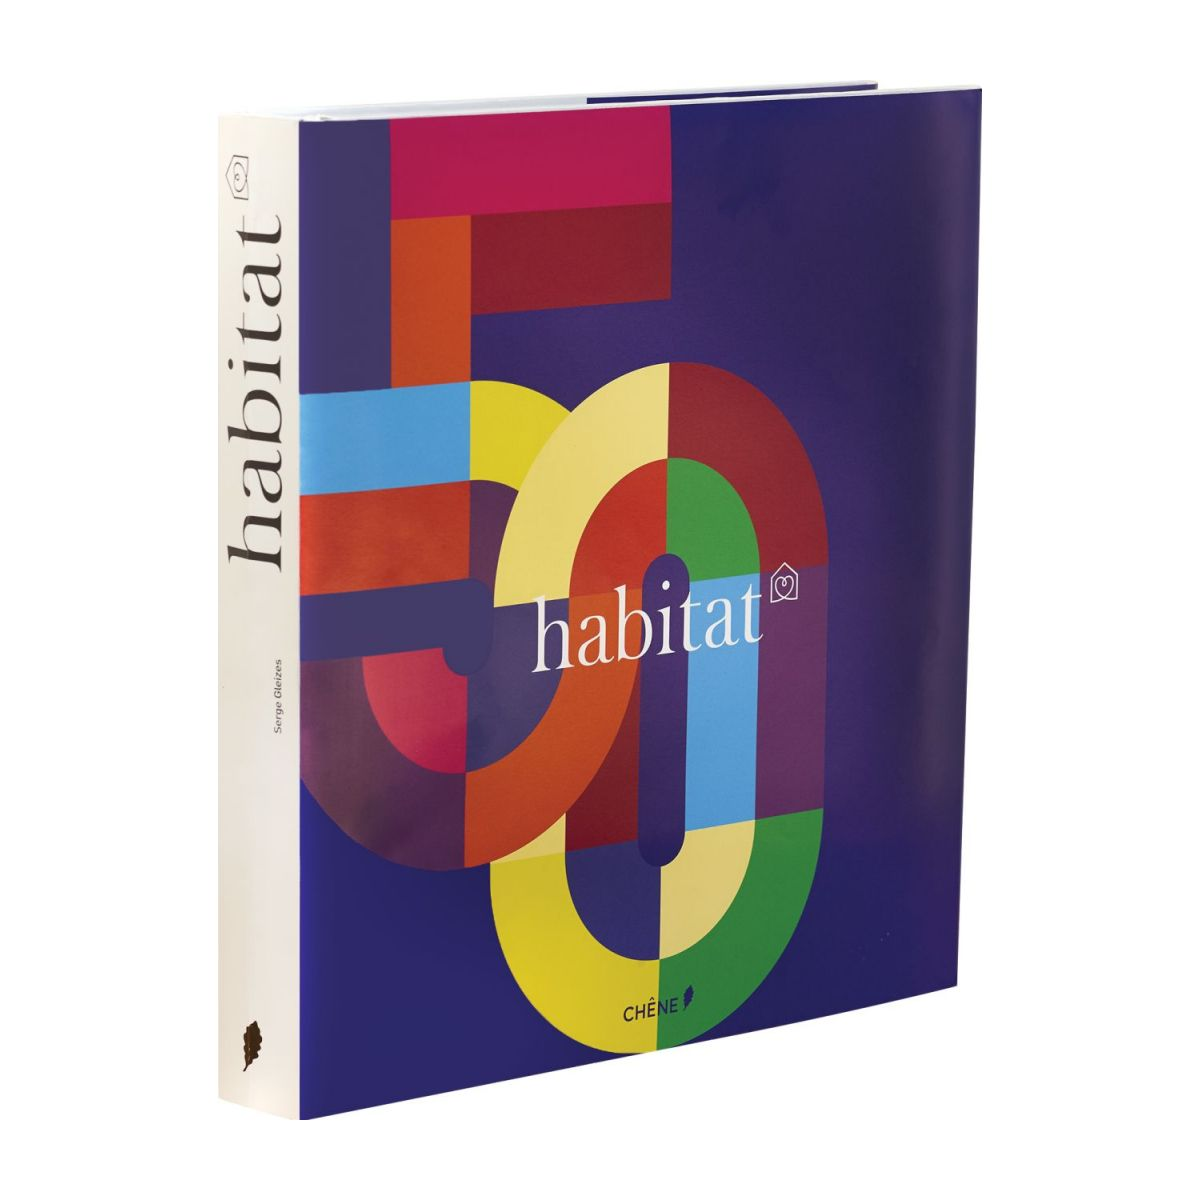 Habitat at 50 book, UK version n°1